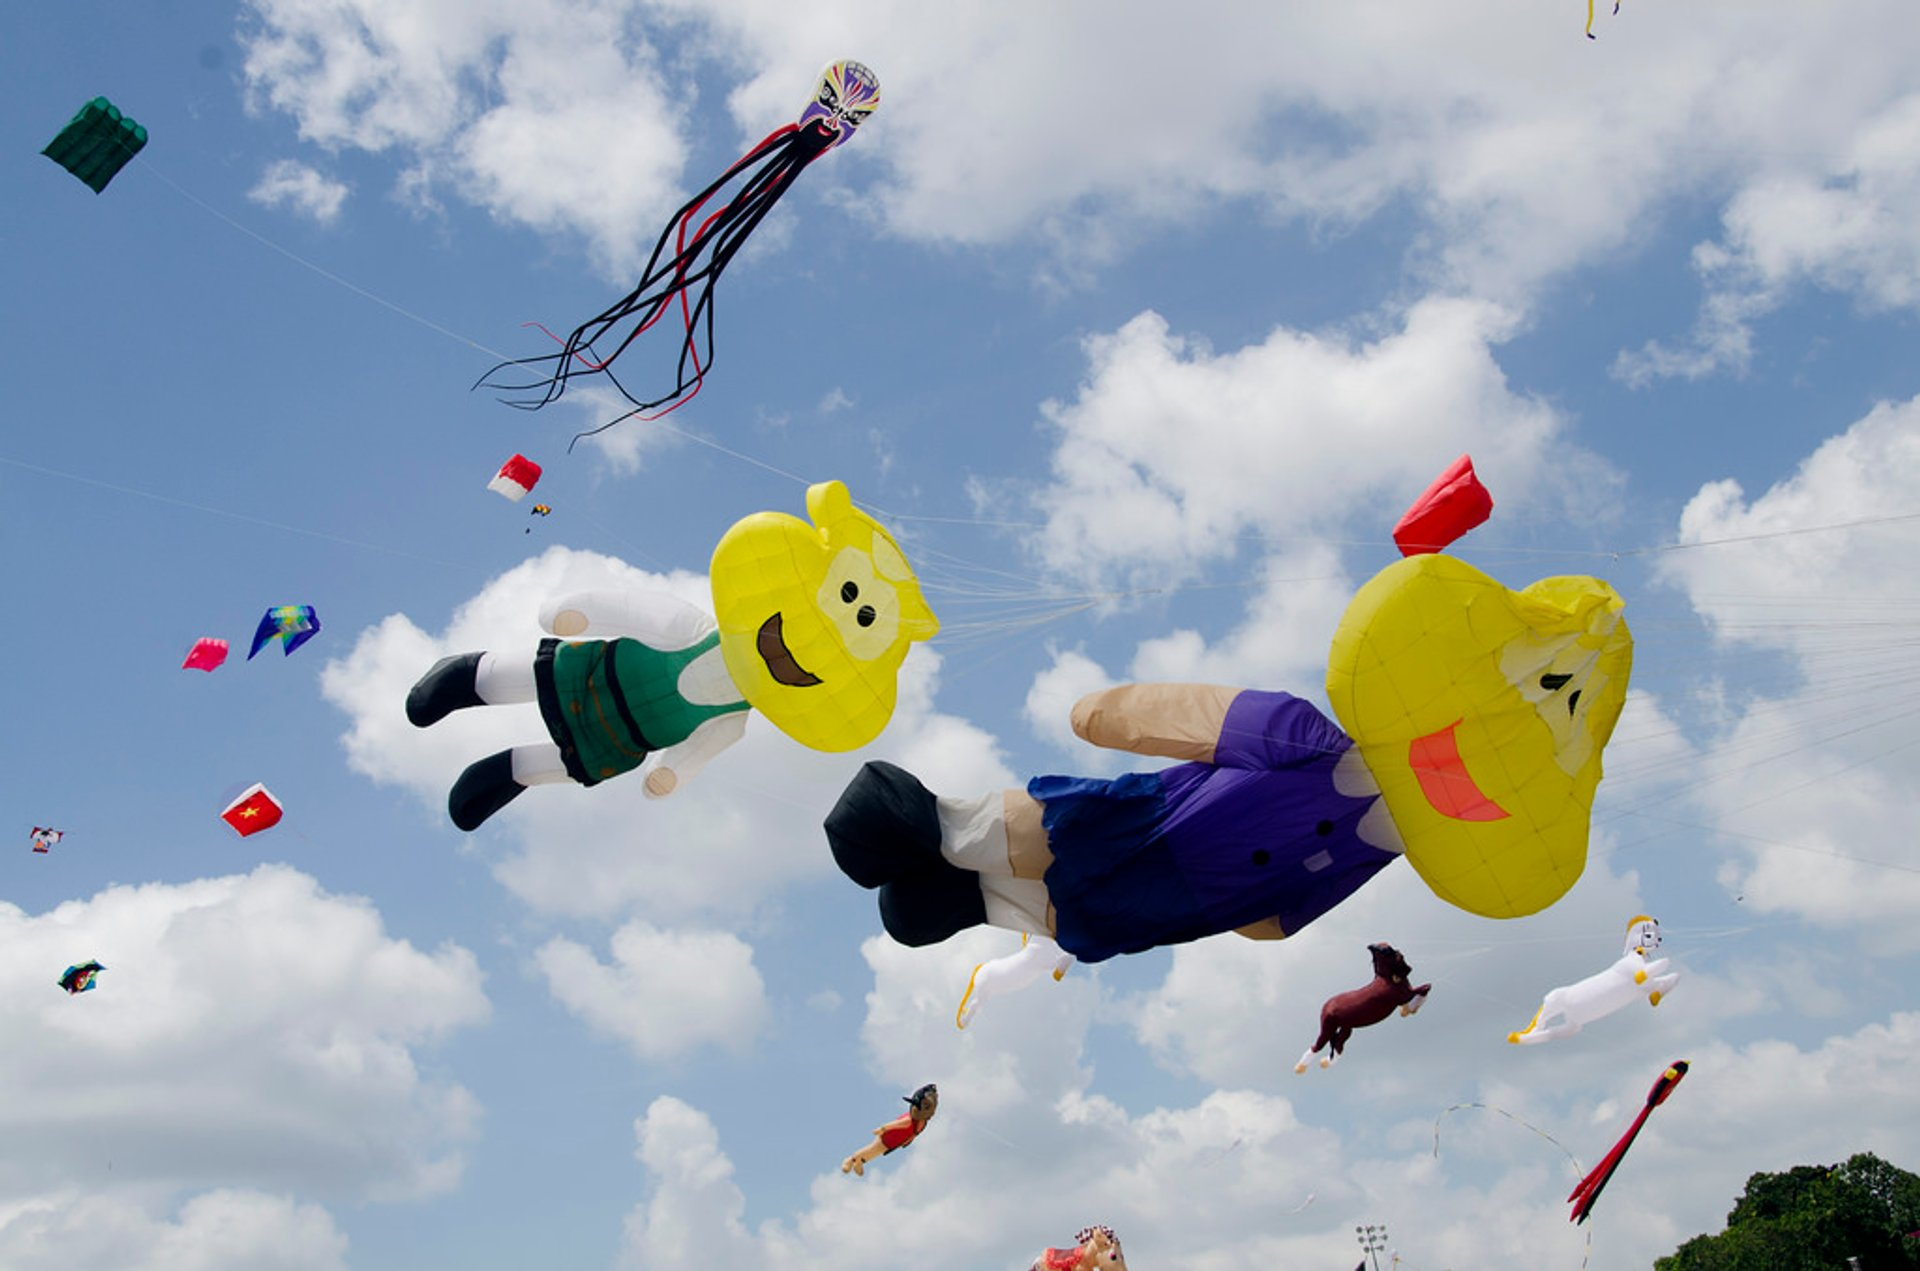 Traditional Kite Flying in Malaysia 2020 - Best Time